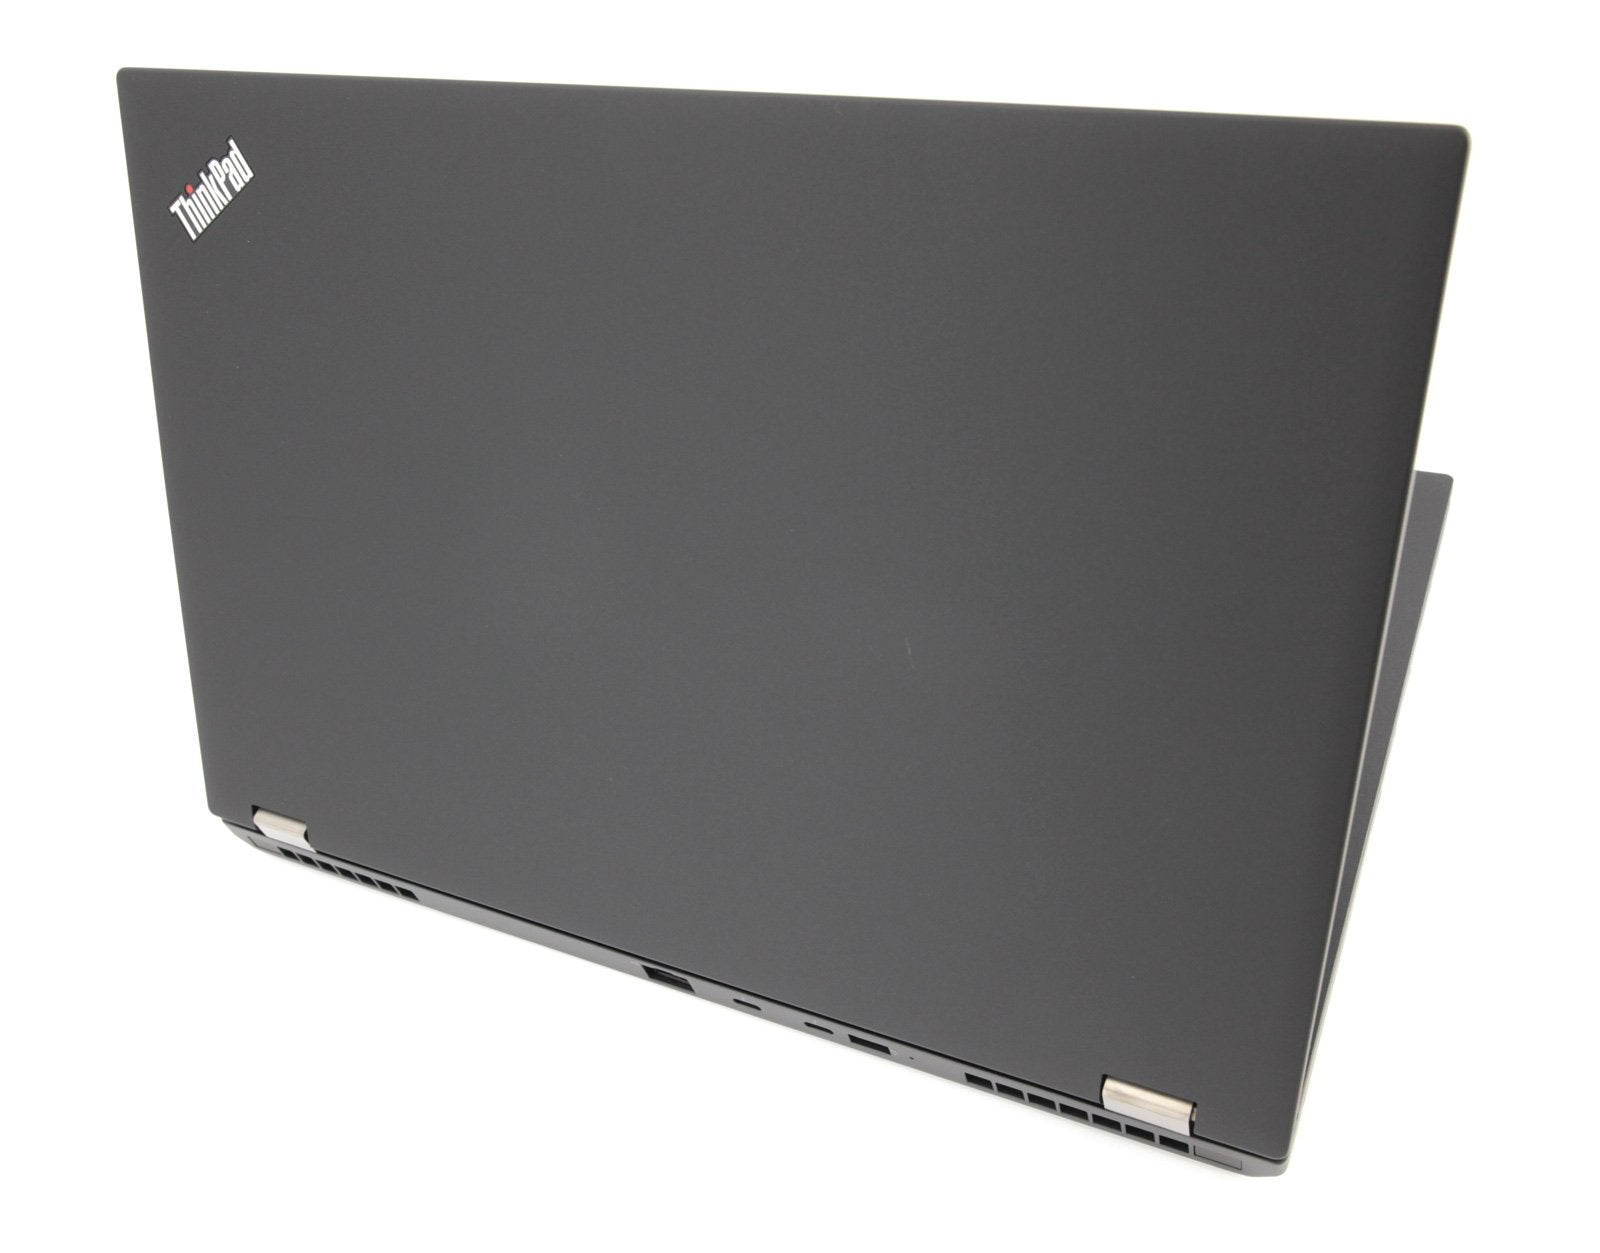 Lenovo ThinkPad P53 15.6